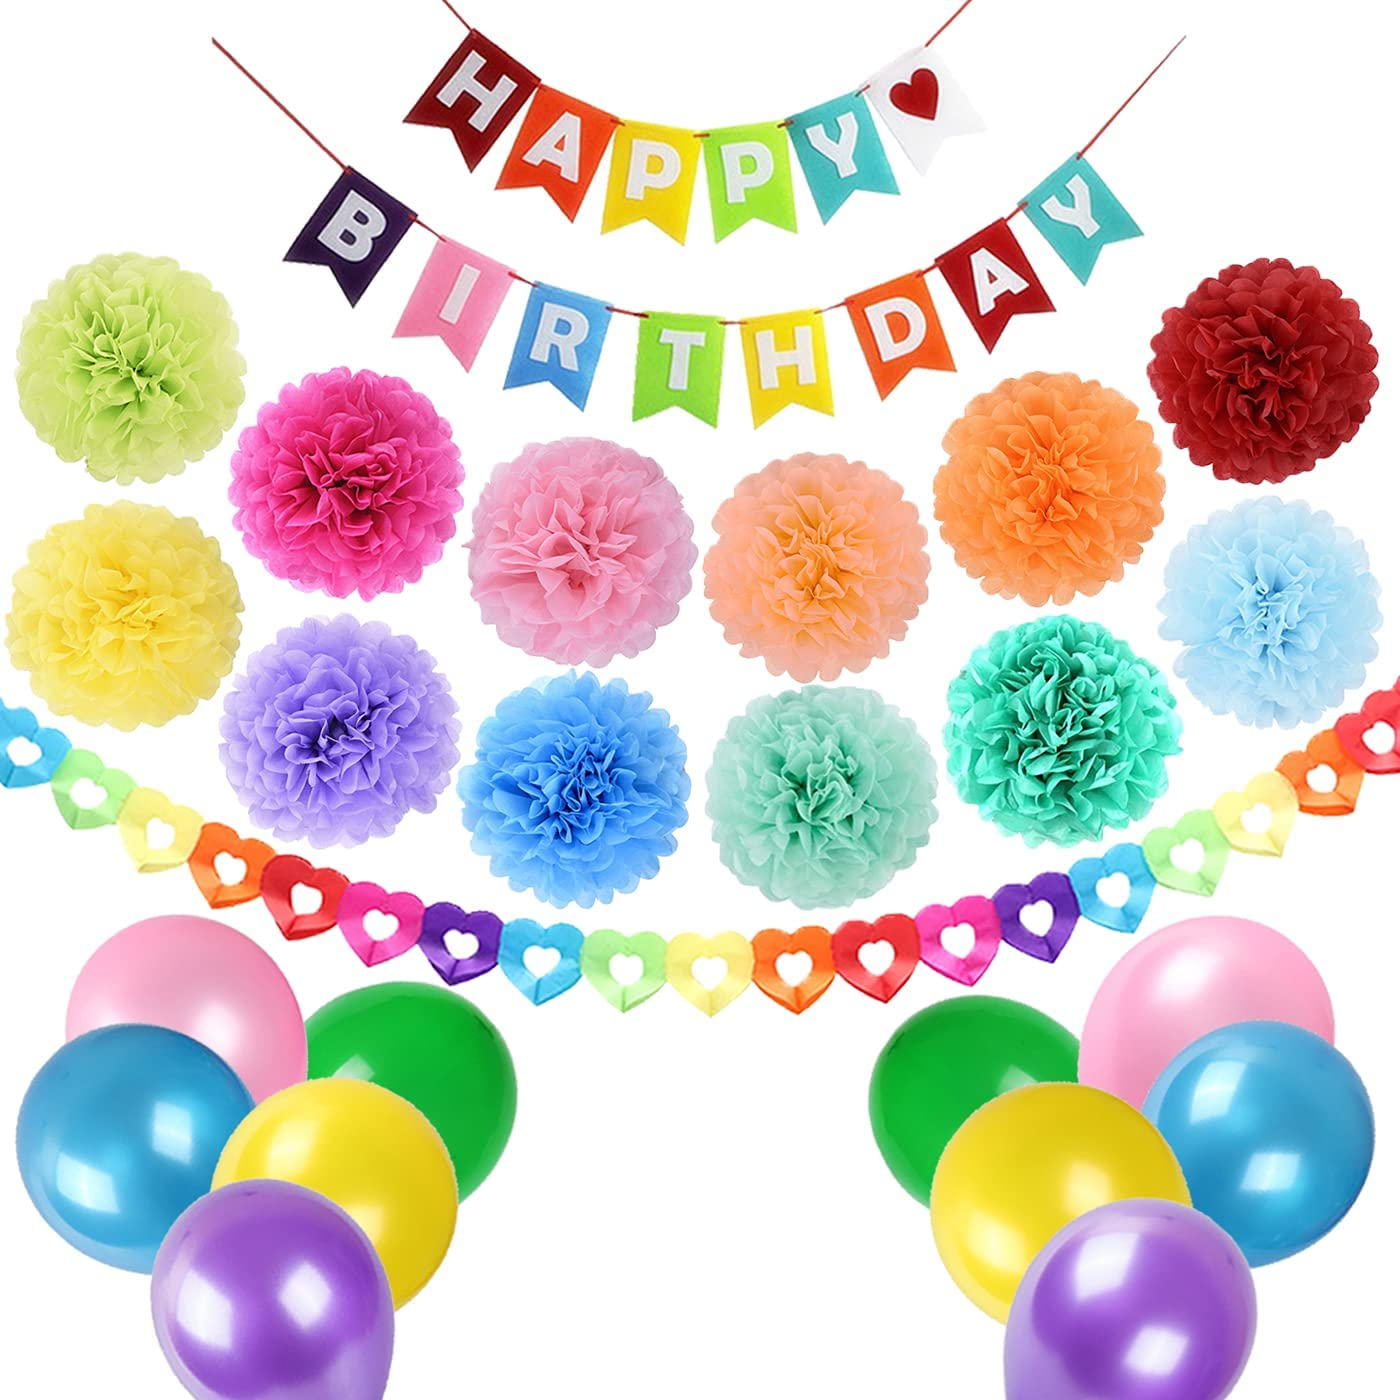 Rainbow Birthday Balloons Poms Decorations Colorful Felt Happy Birthday Banner Paper Pom Poms Heart Garland Latex Balloons Pack for Women Girls Kids Birthday Party Baby Shower Decoration